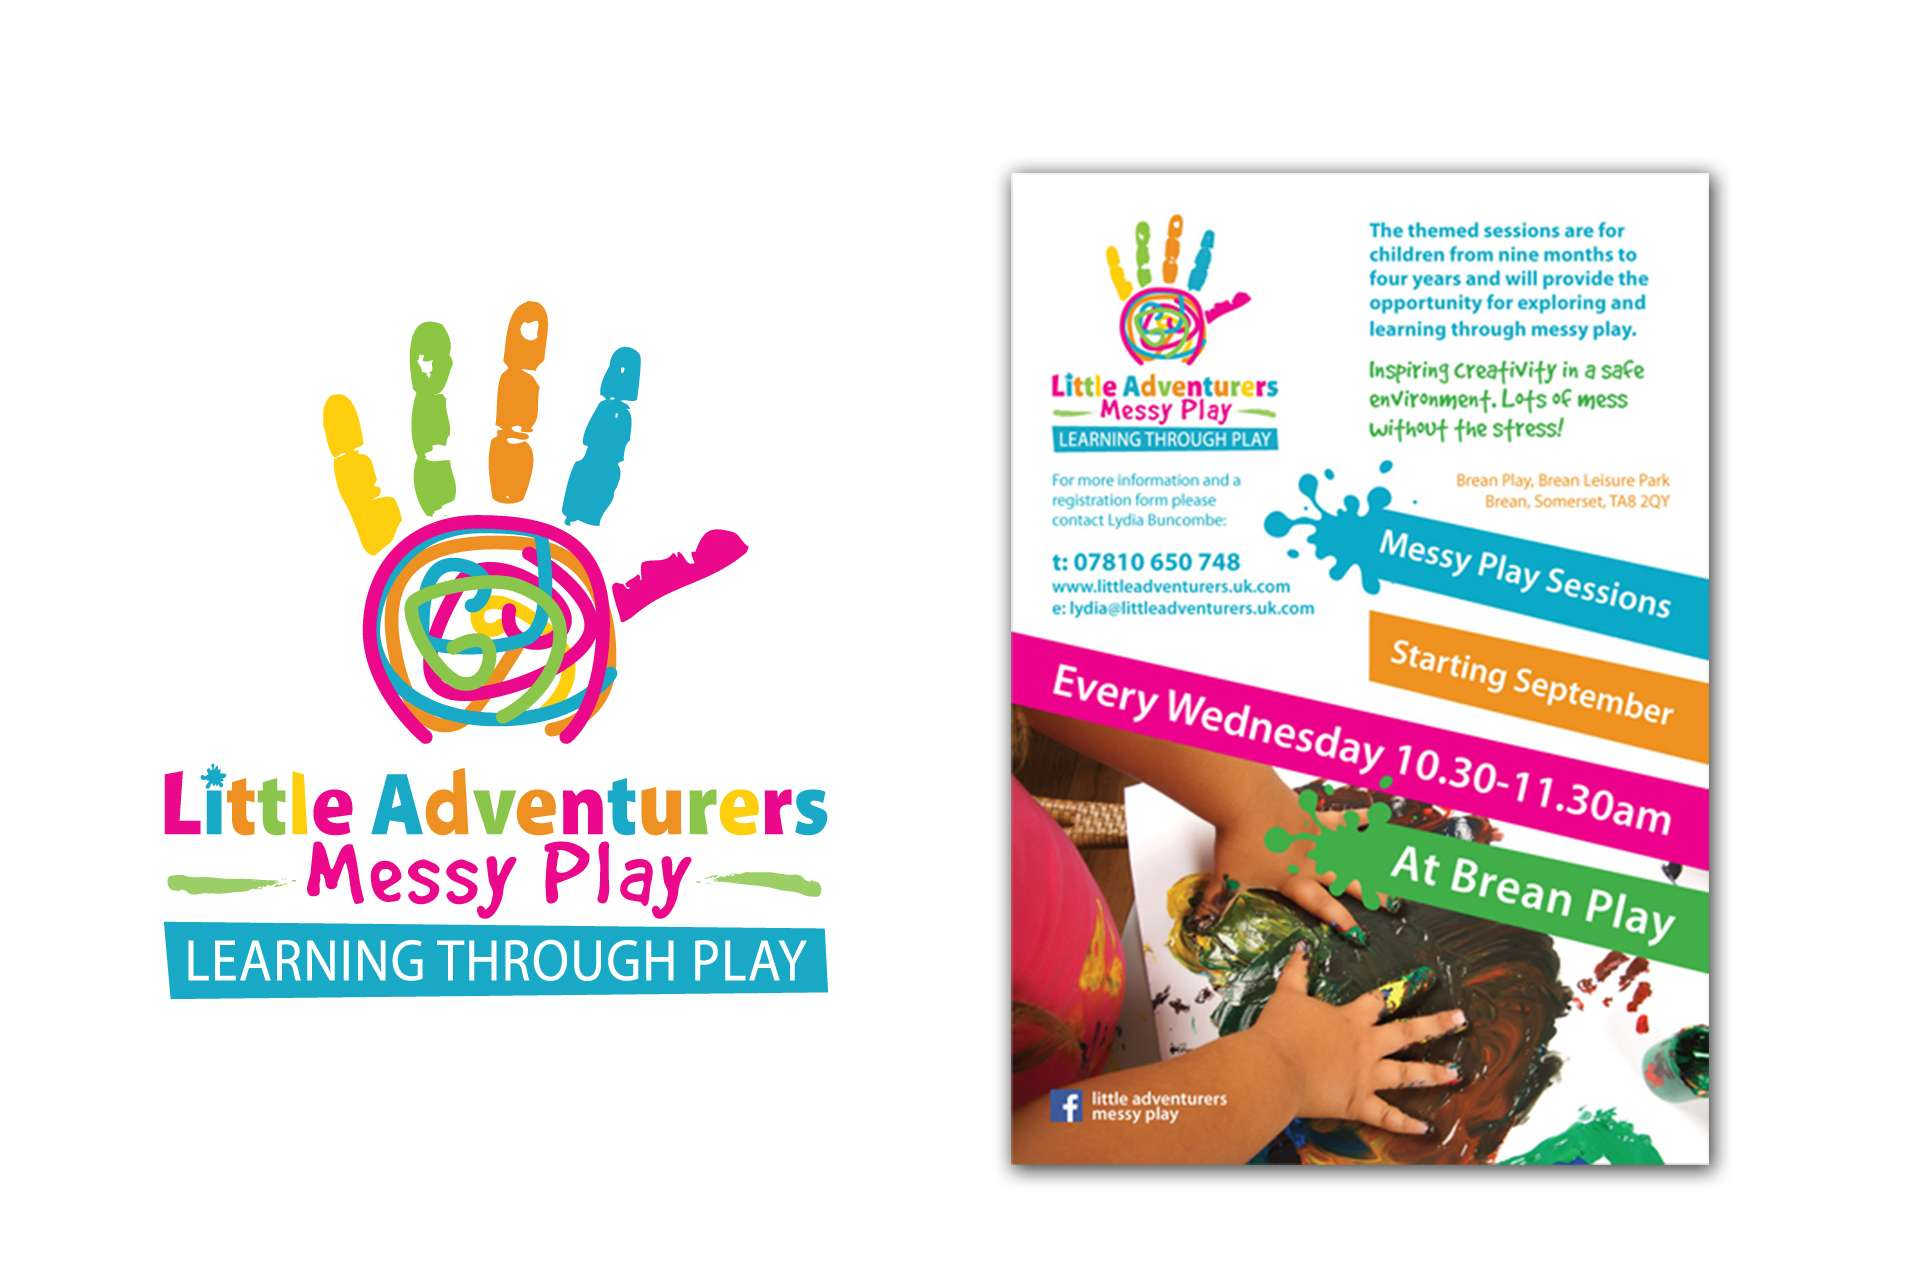 Little Adventurers Messy Play Logo & Poster Design